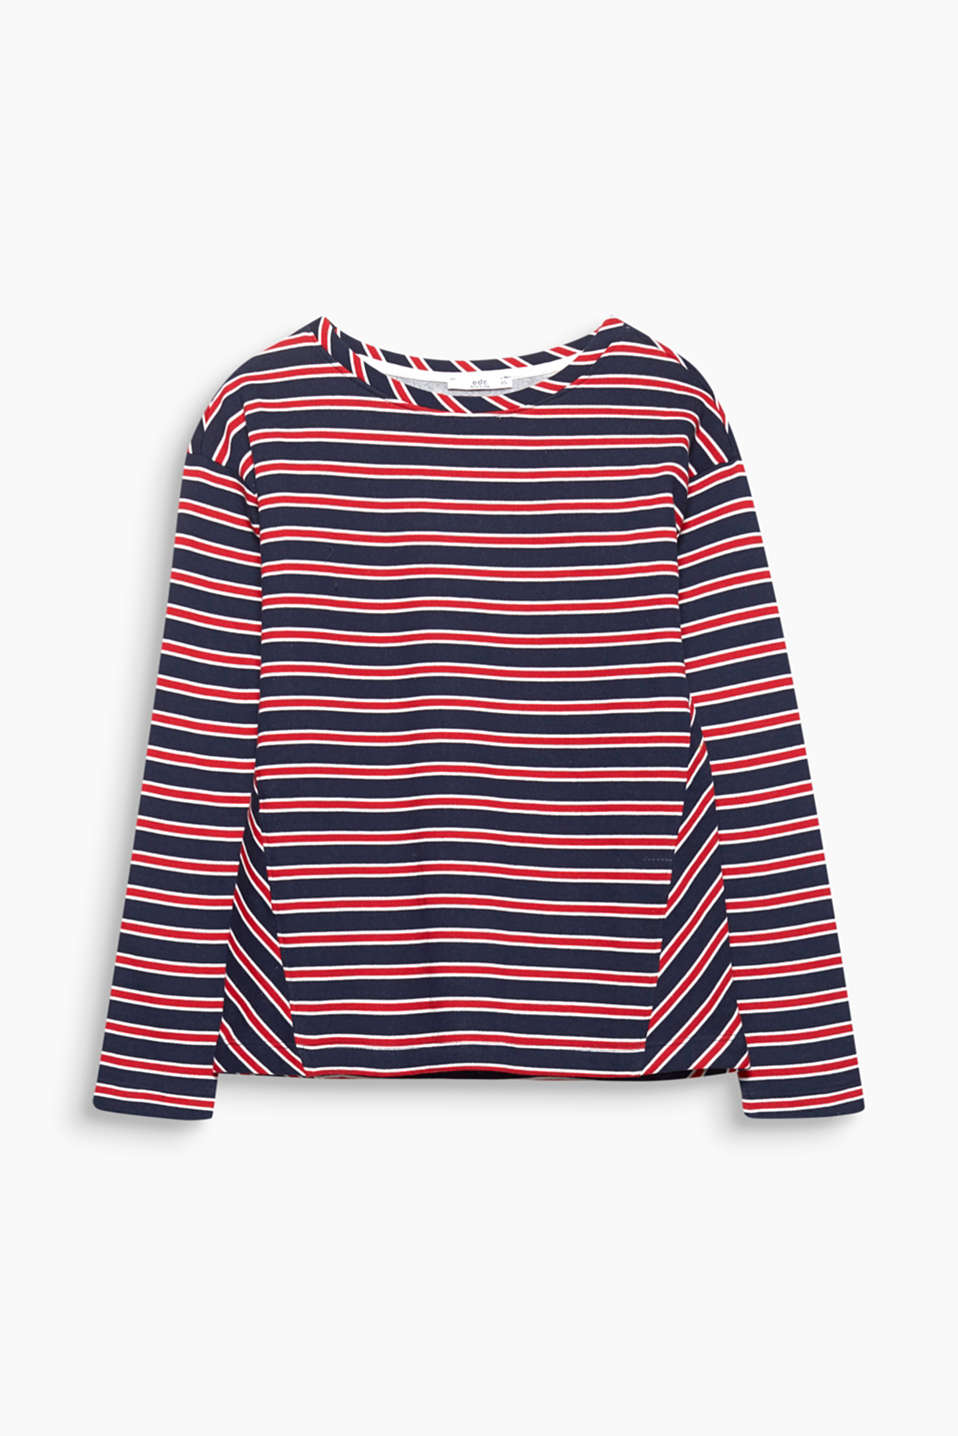 The fashionable A-line design and diagonal side seams give this nautical striped sweatshirt a brand new look!